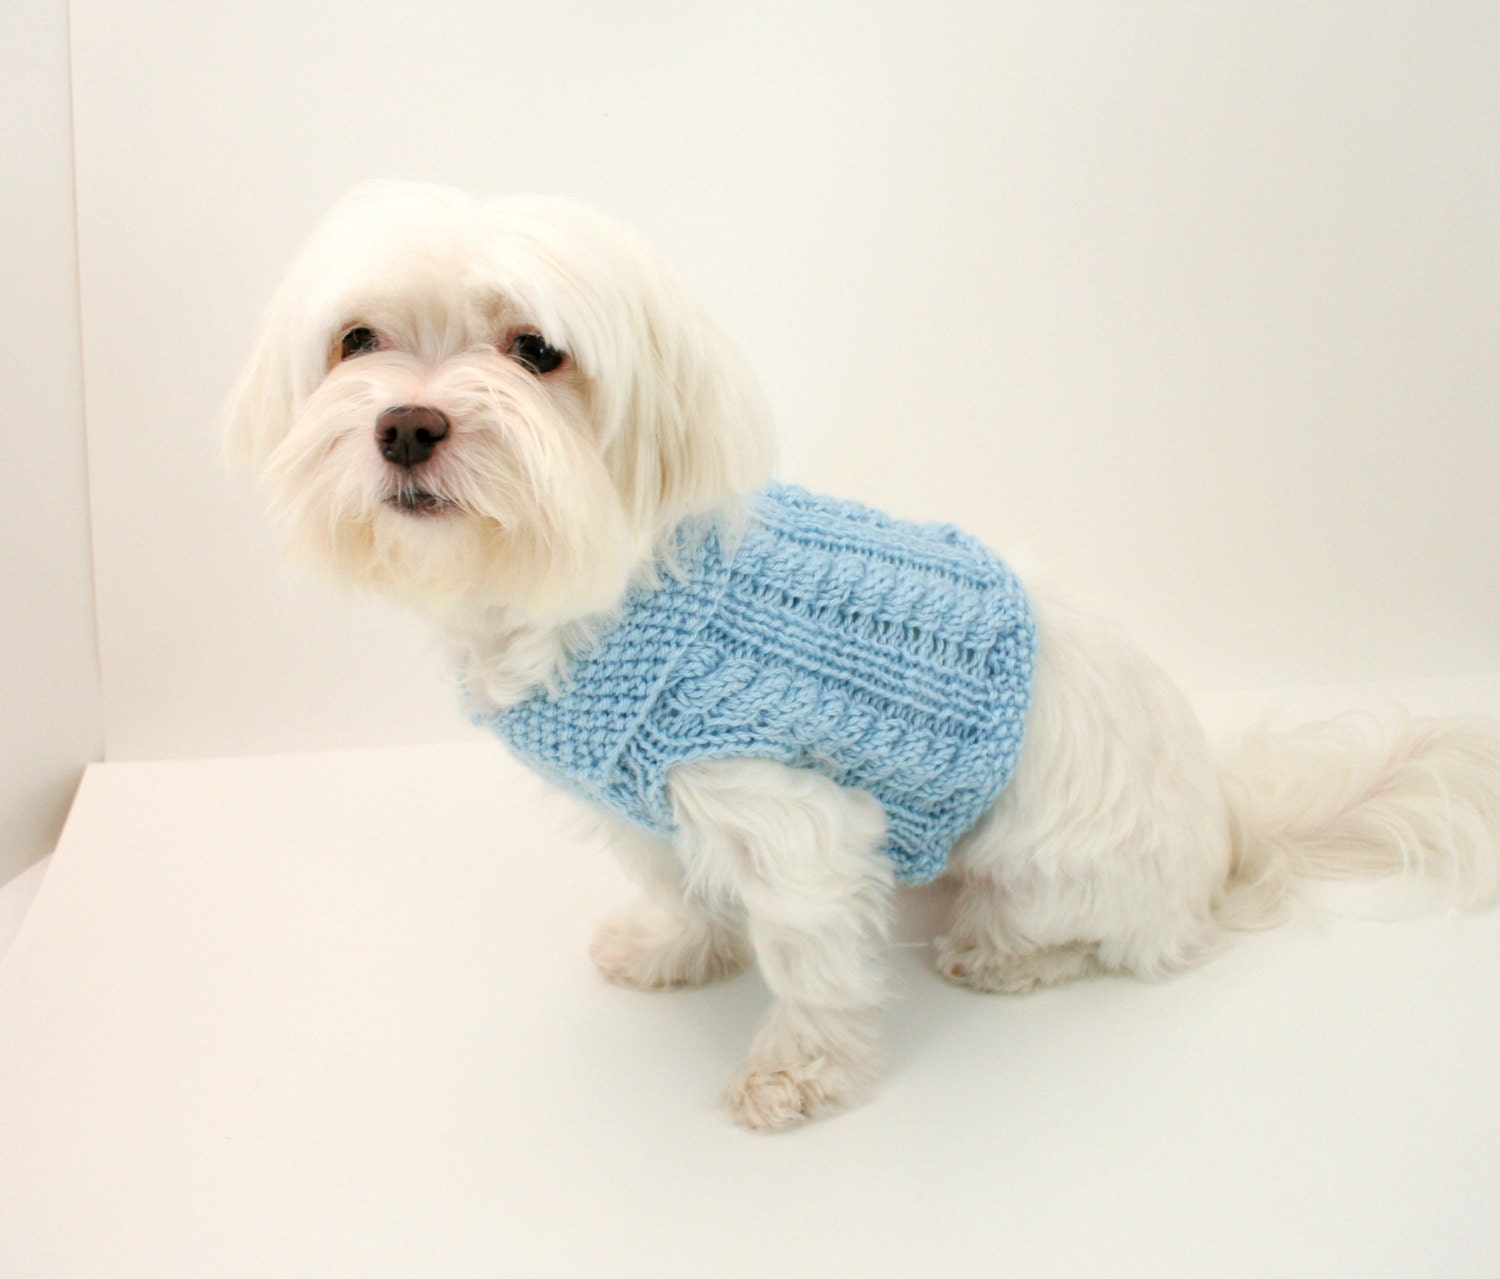 Knitting Pattern Pug Dog Sweater : DIGITAL PATTERN:Knit Dog Clothes PatternKnit Dog Sweater